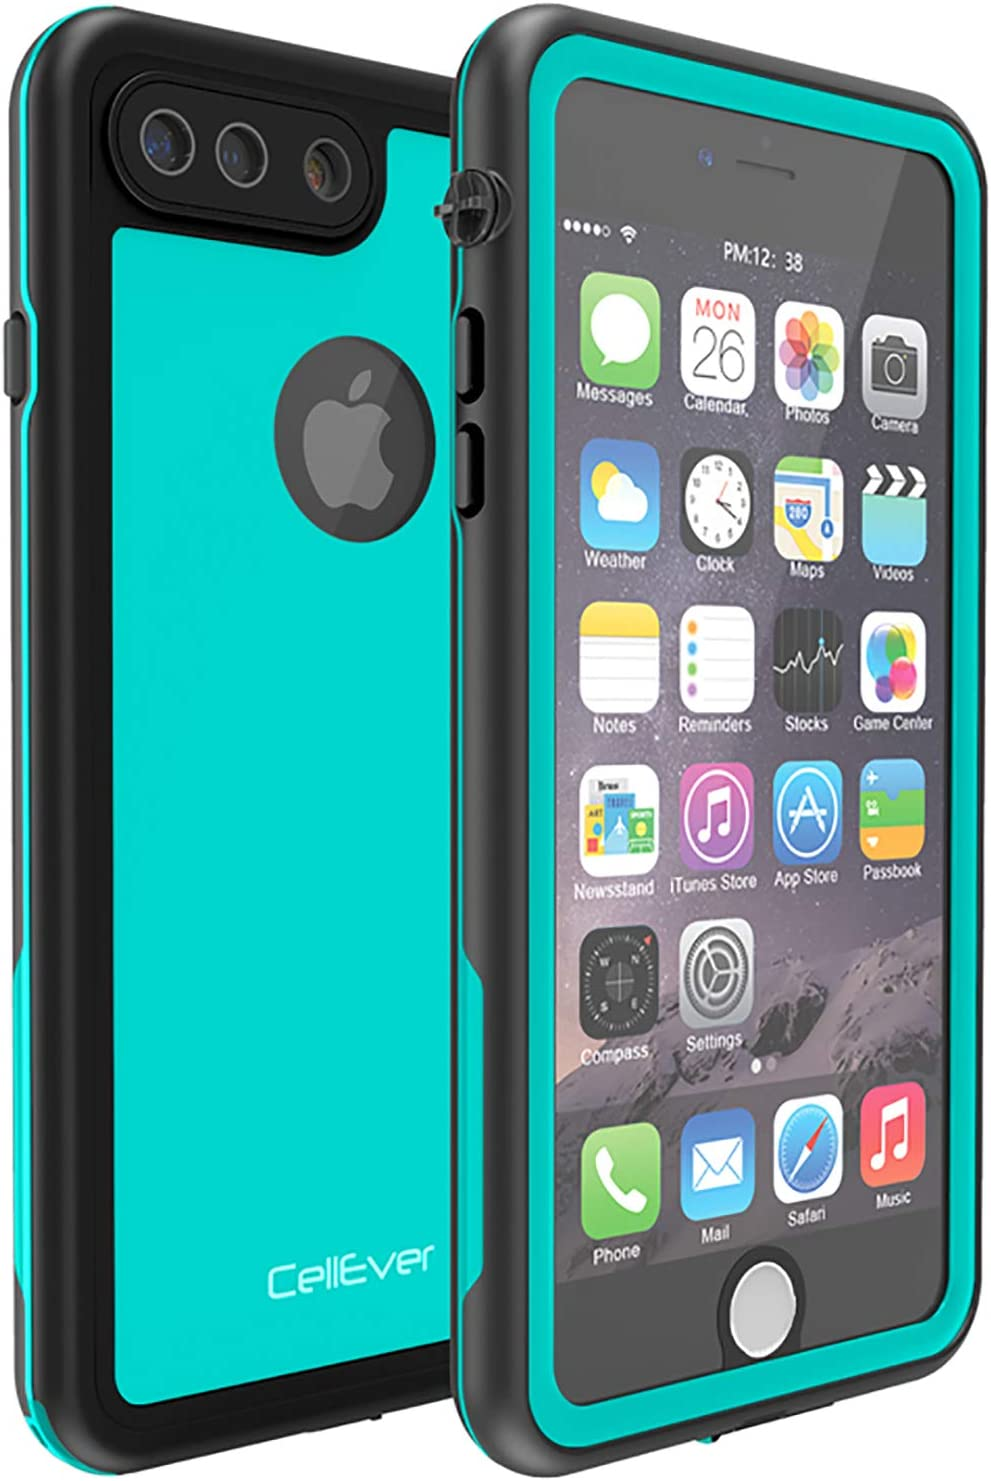 CellEver Compatible with iPhone 7 Plus / 8 Plus Waterproof Case Shockproof IP68 Certified SandProof Snowproof Full Body Protective Cover Designed for iPhone 7 Plus/iPhone 8 Plus - KZ C-Ocean Blue